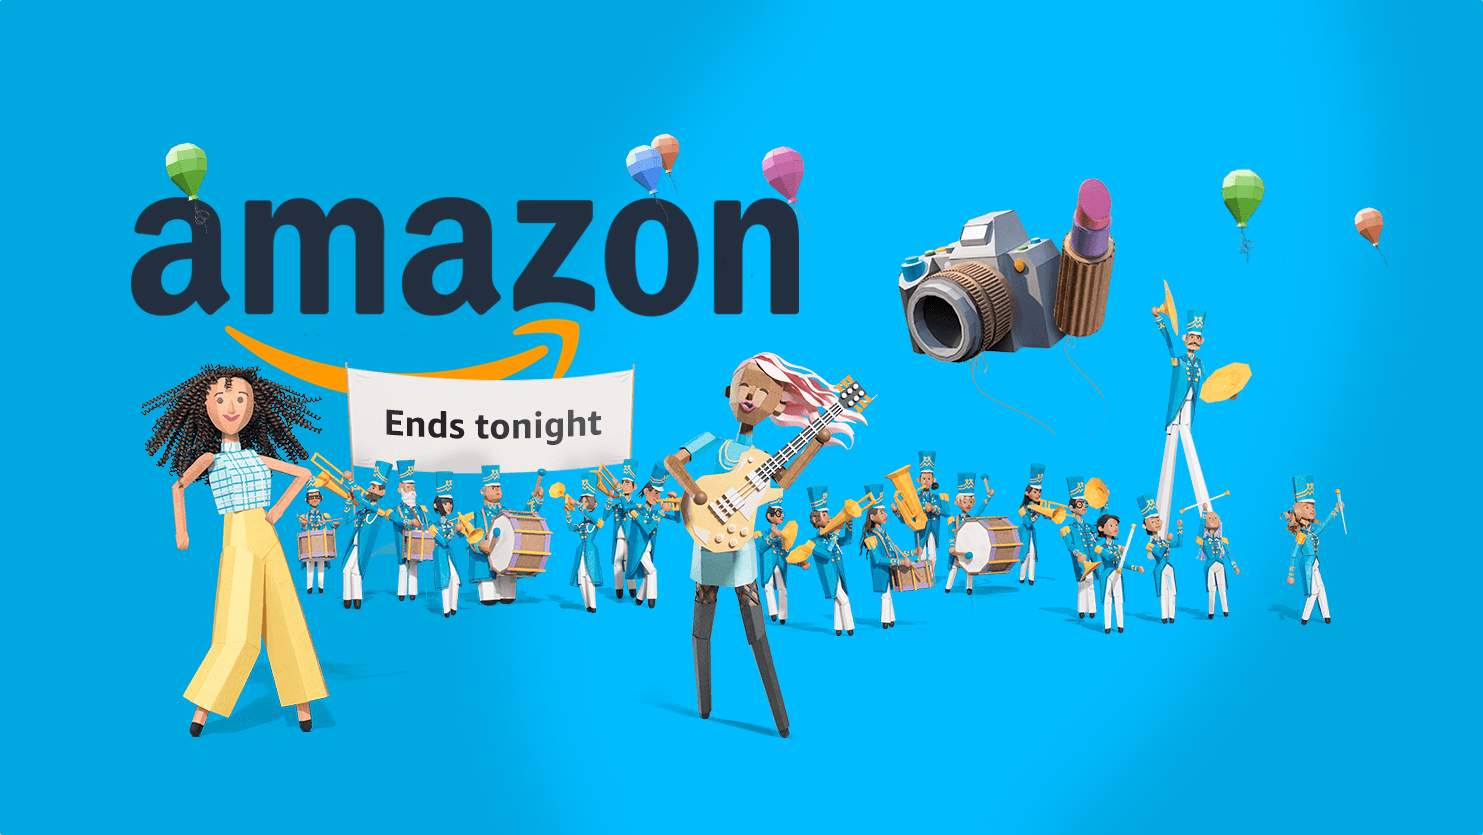 Amazon Prime day is a typical application of FOMO in marketing